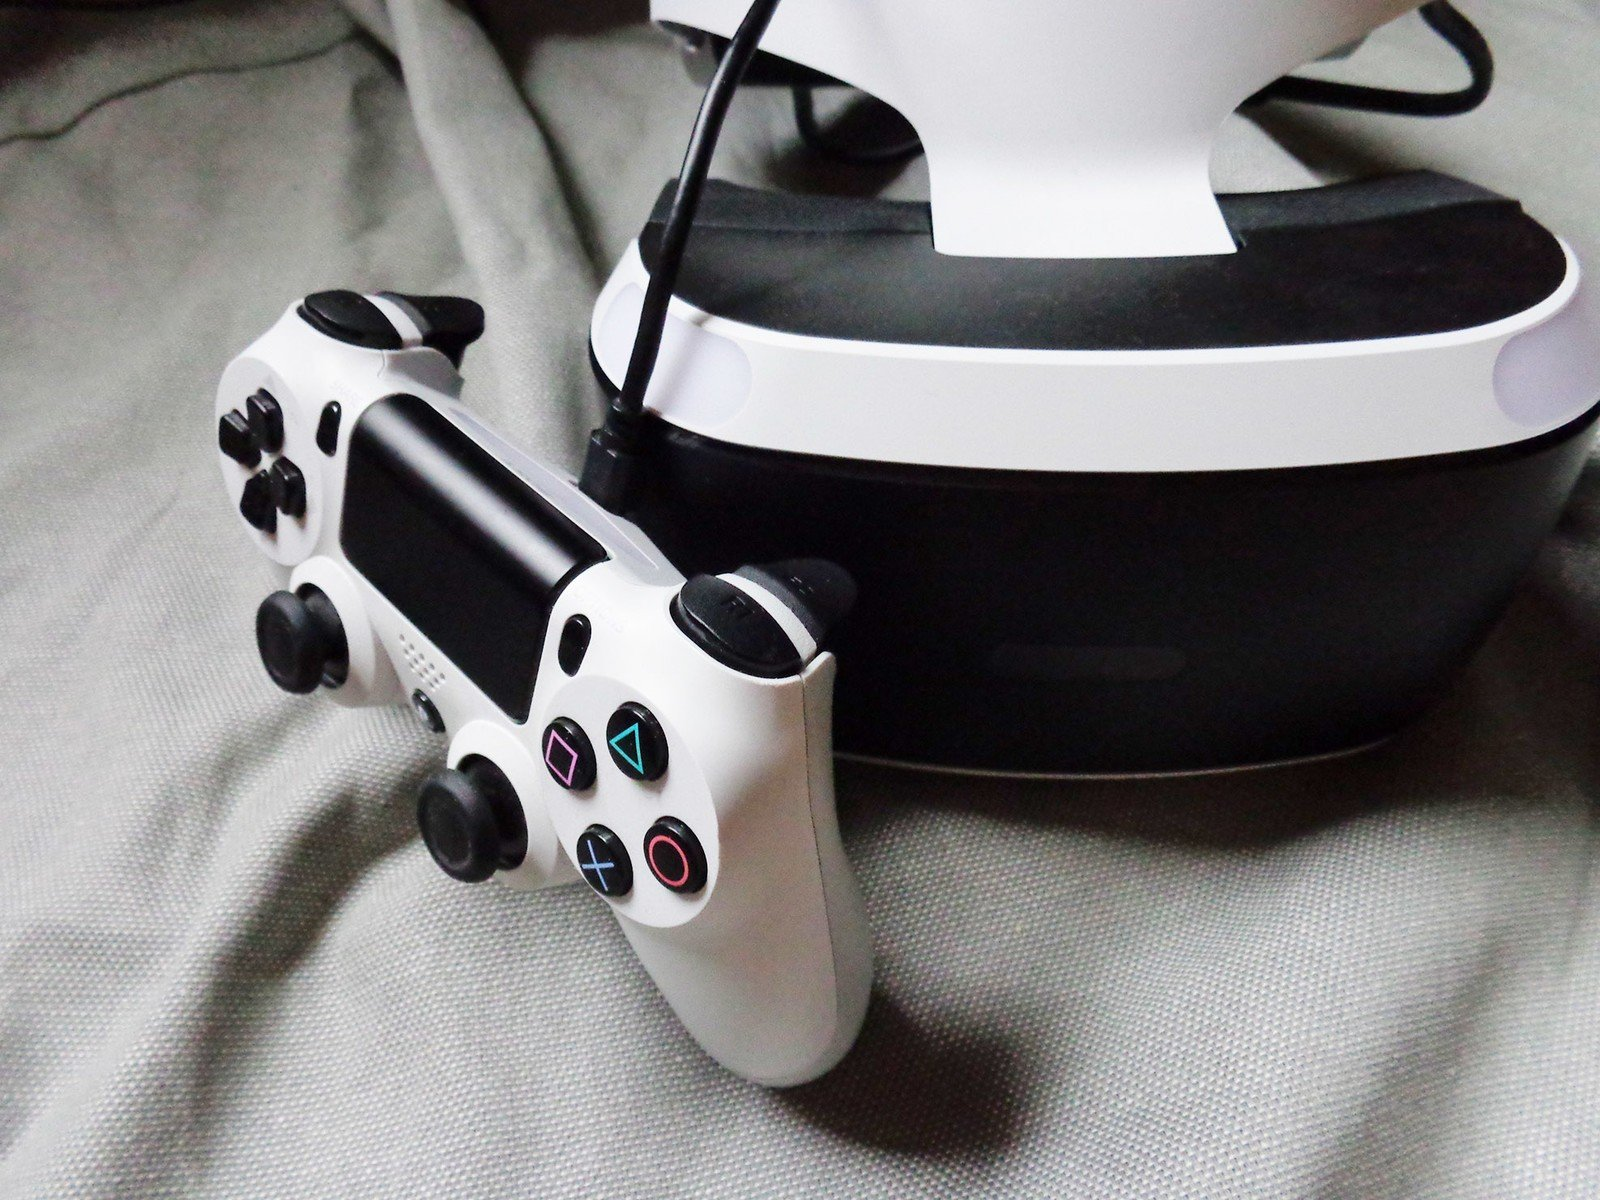 5a74fb67f431 Playstation VR has a great selection of games for your adventures in VR.  The list of games continues to expand going forward